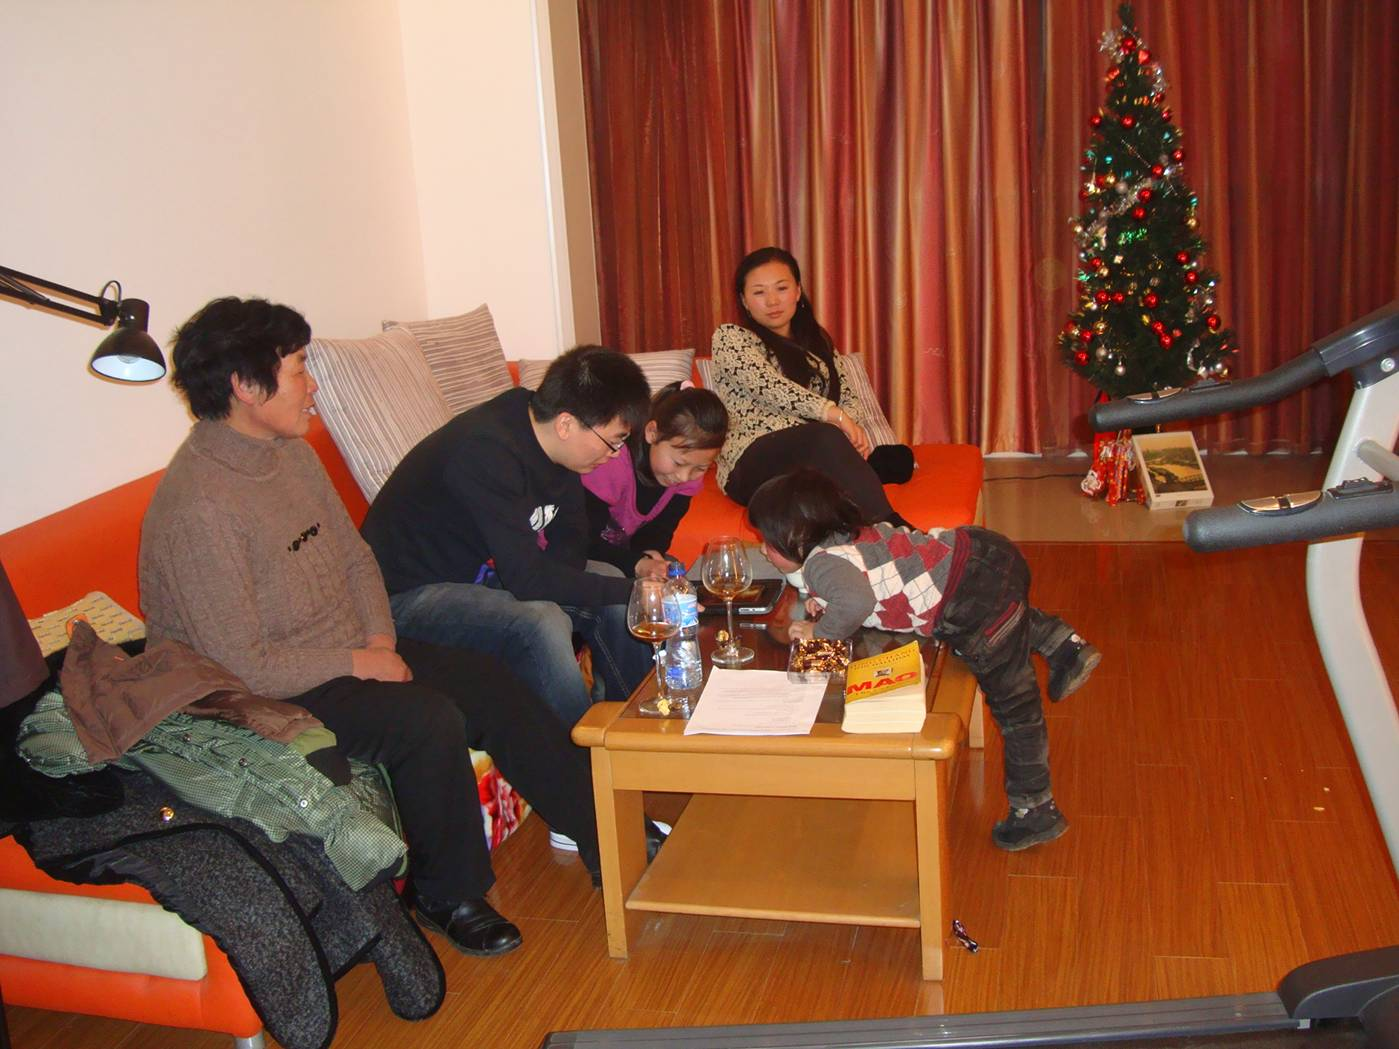 Picture:  It was a small tree, and a small pile of presents compared to family Christmases in my past.  But the warmth and family feeling was wonderful.  Christmas in Nantong, China